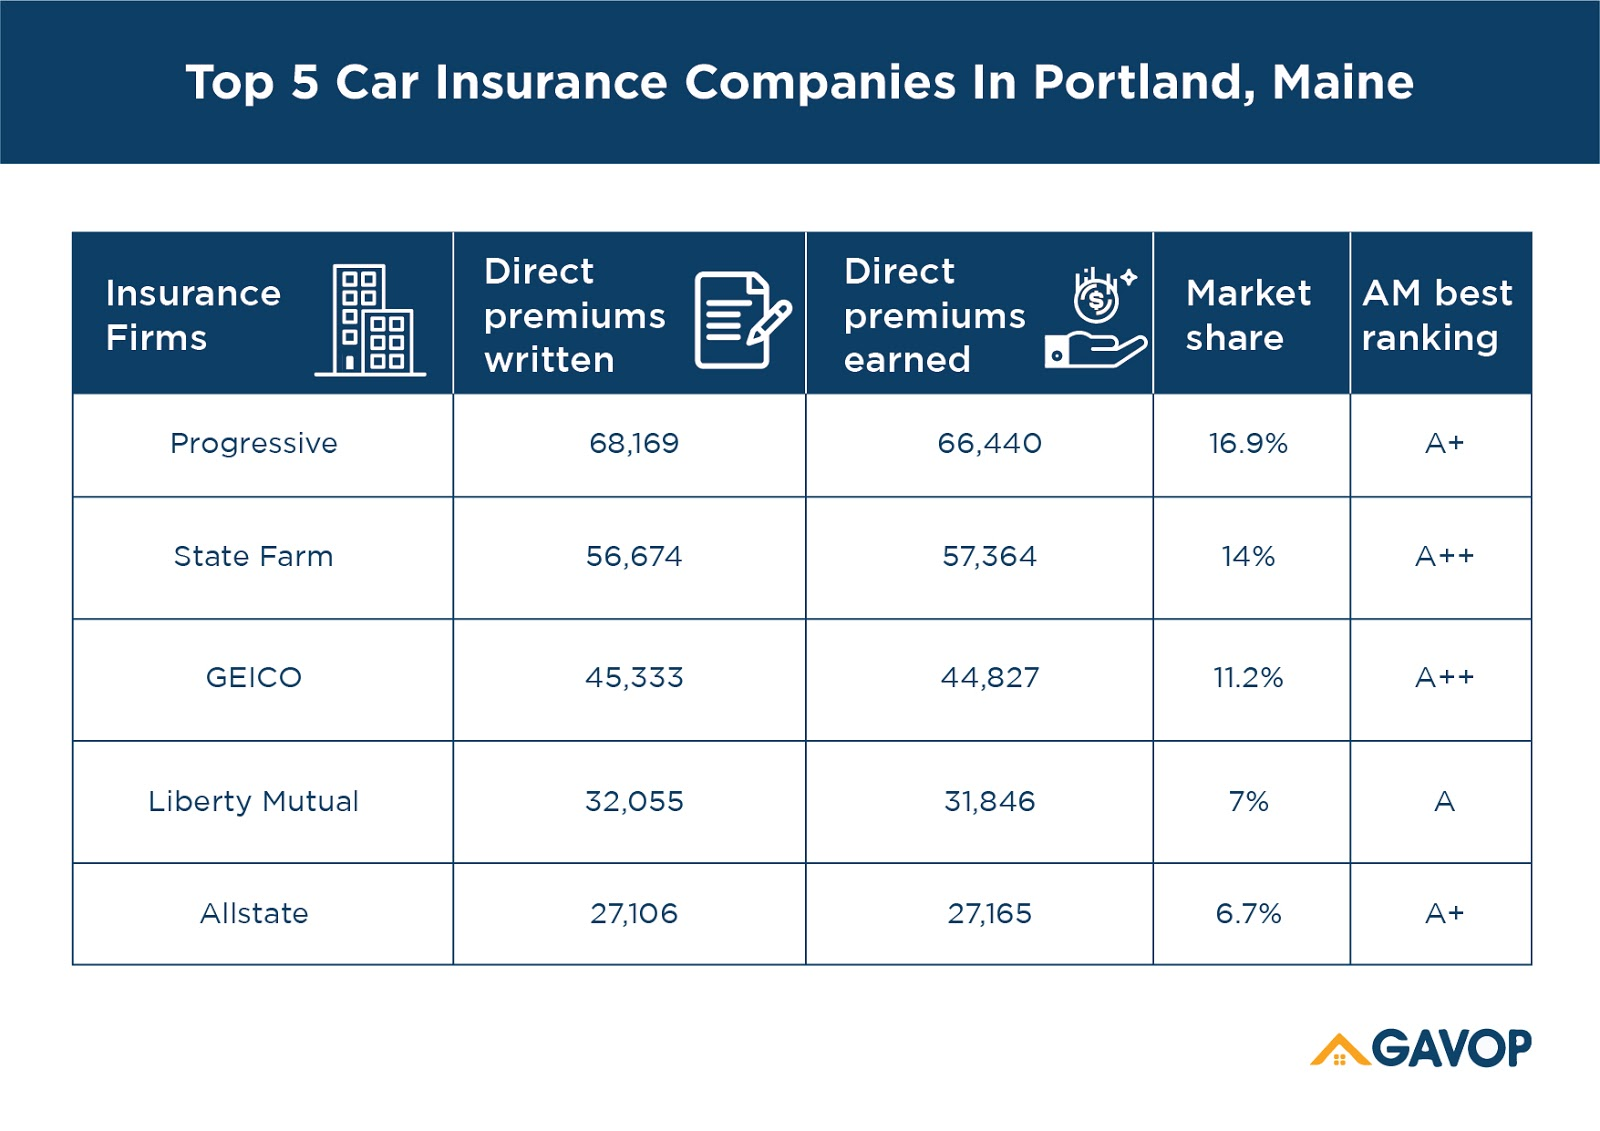 Top 5 Car Insurance Companies In Portland, Maine